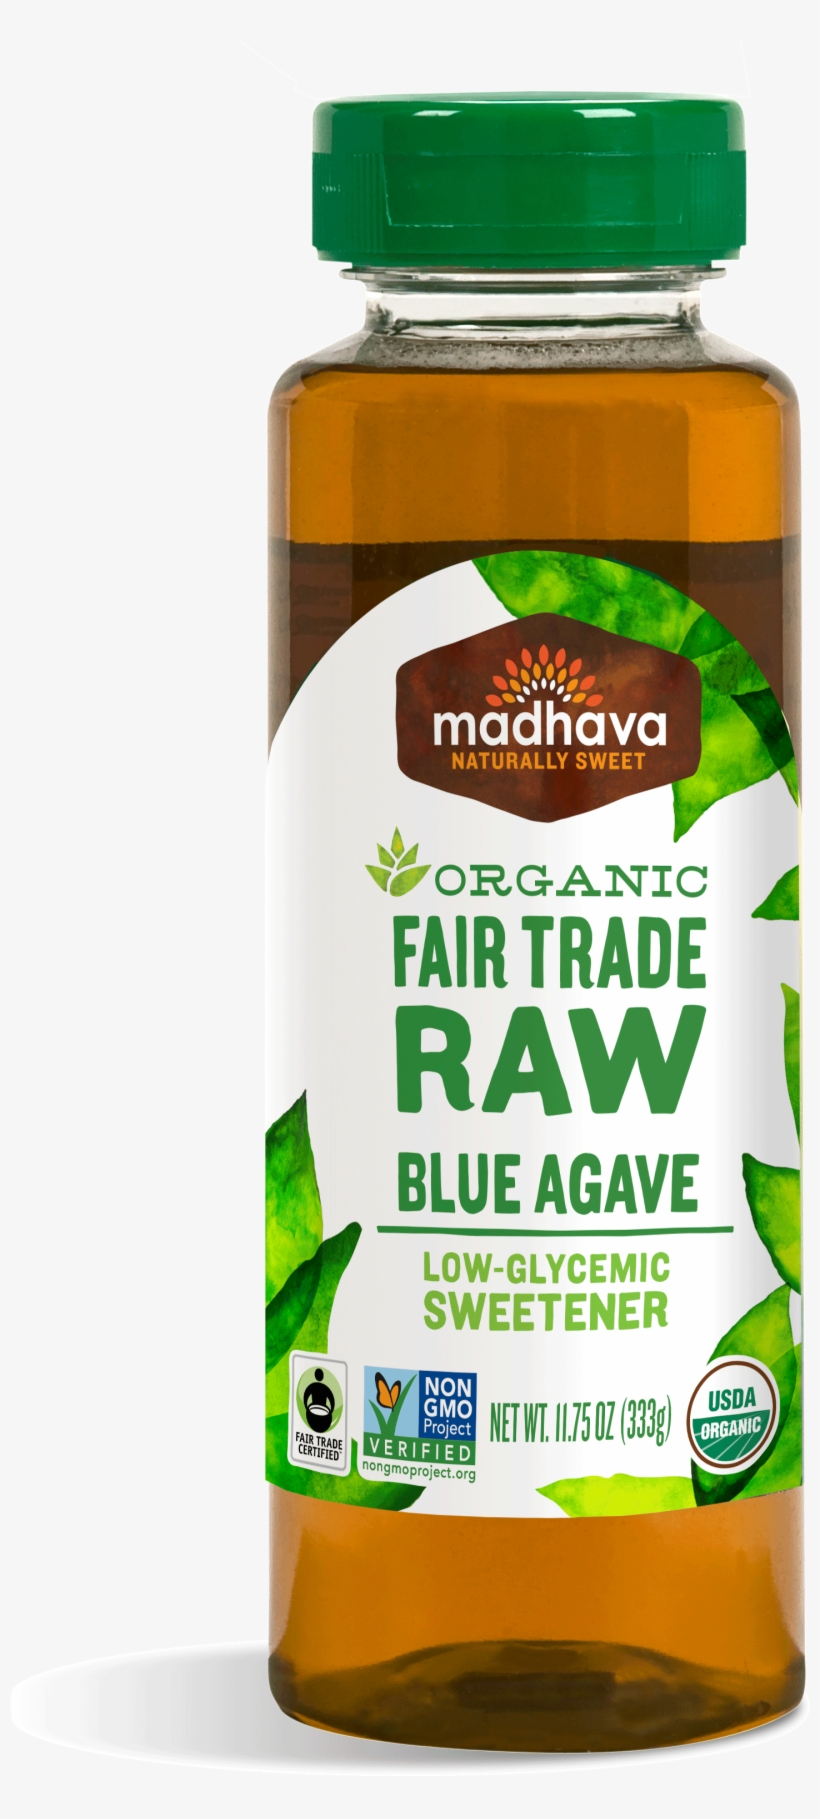 Organic Fair Trade Raw Agave - Madhava Organic Raw Agave Nectar - 23.5 Fl Oz, transparent png #678903